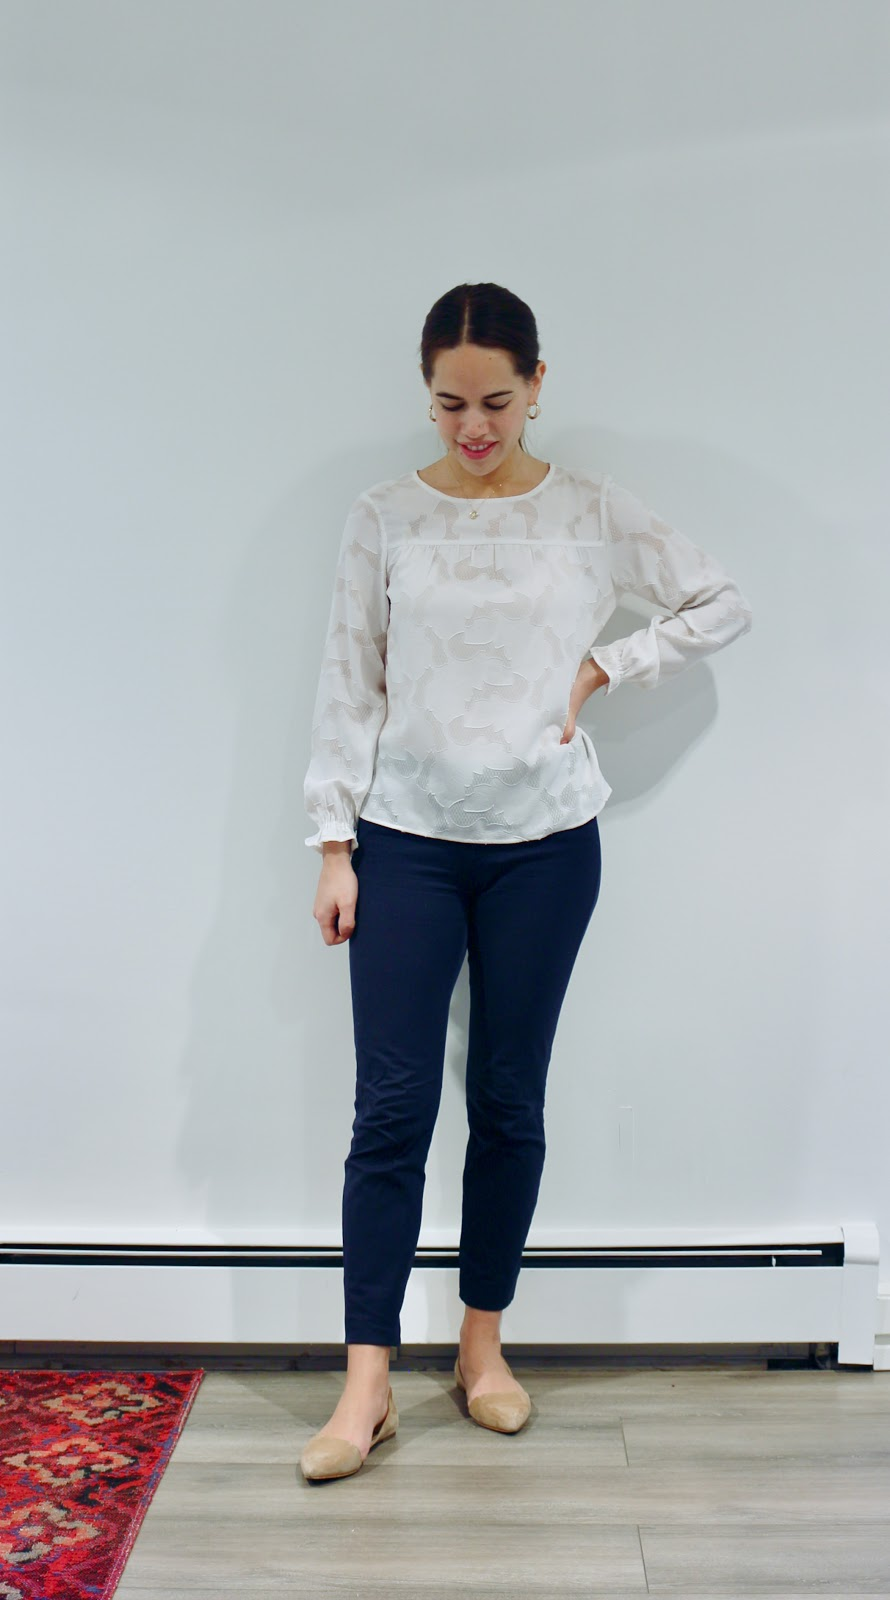 Jules in Flats - Floral Jacquard Blouse (Business Casual Fall Workwear on a Budget)